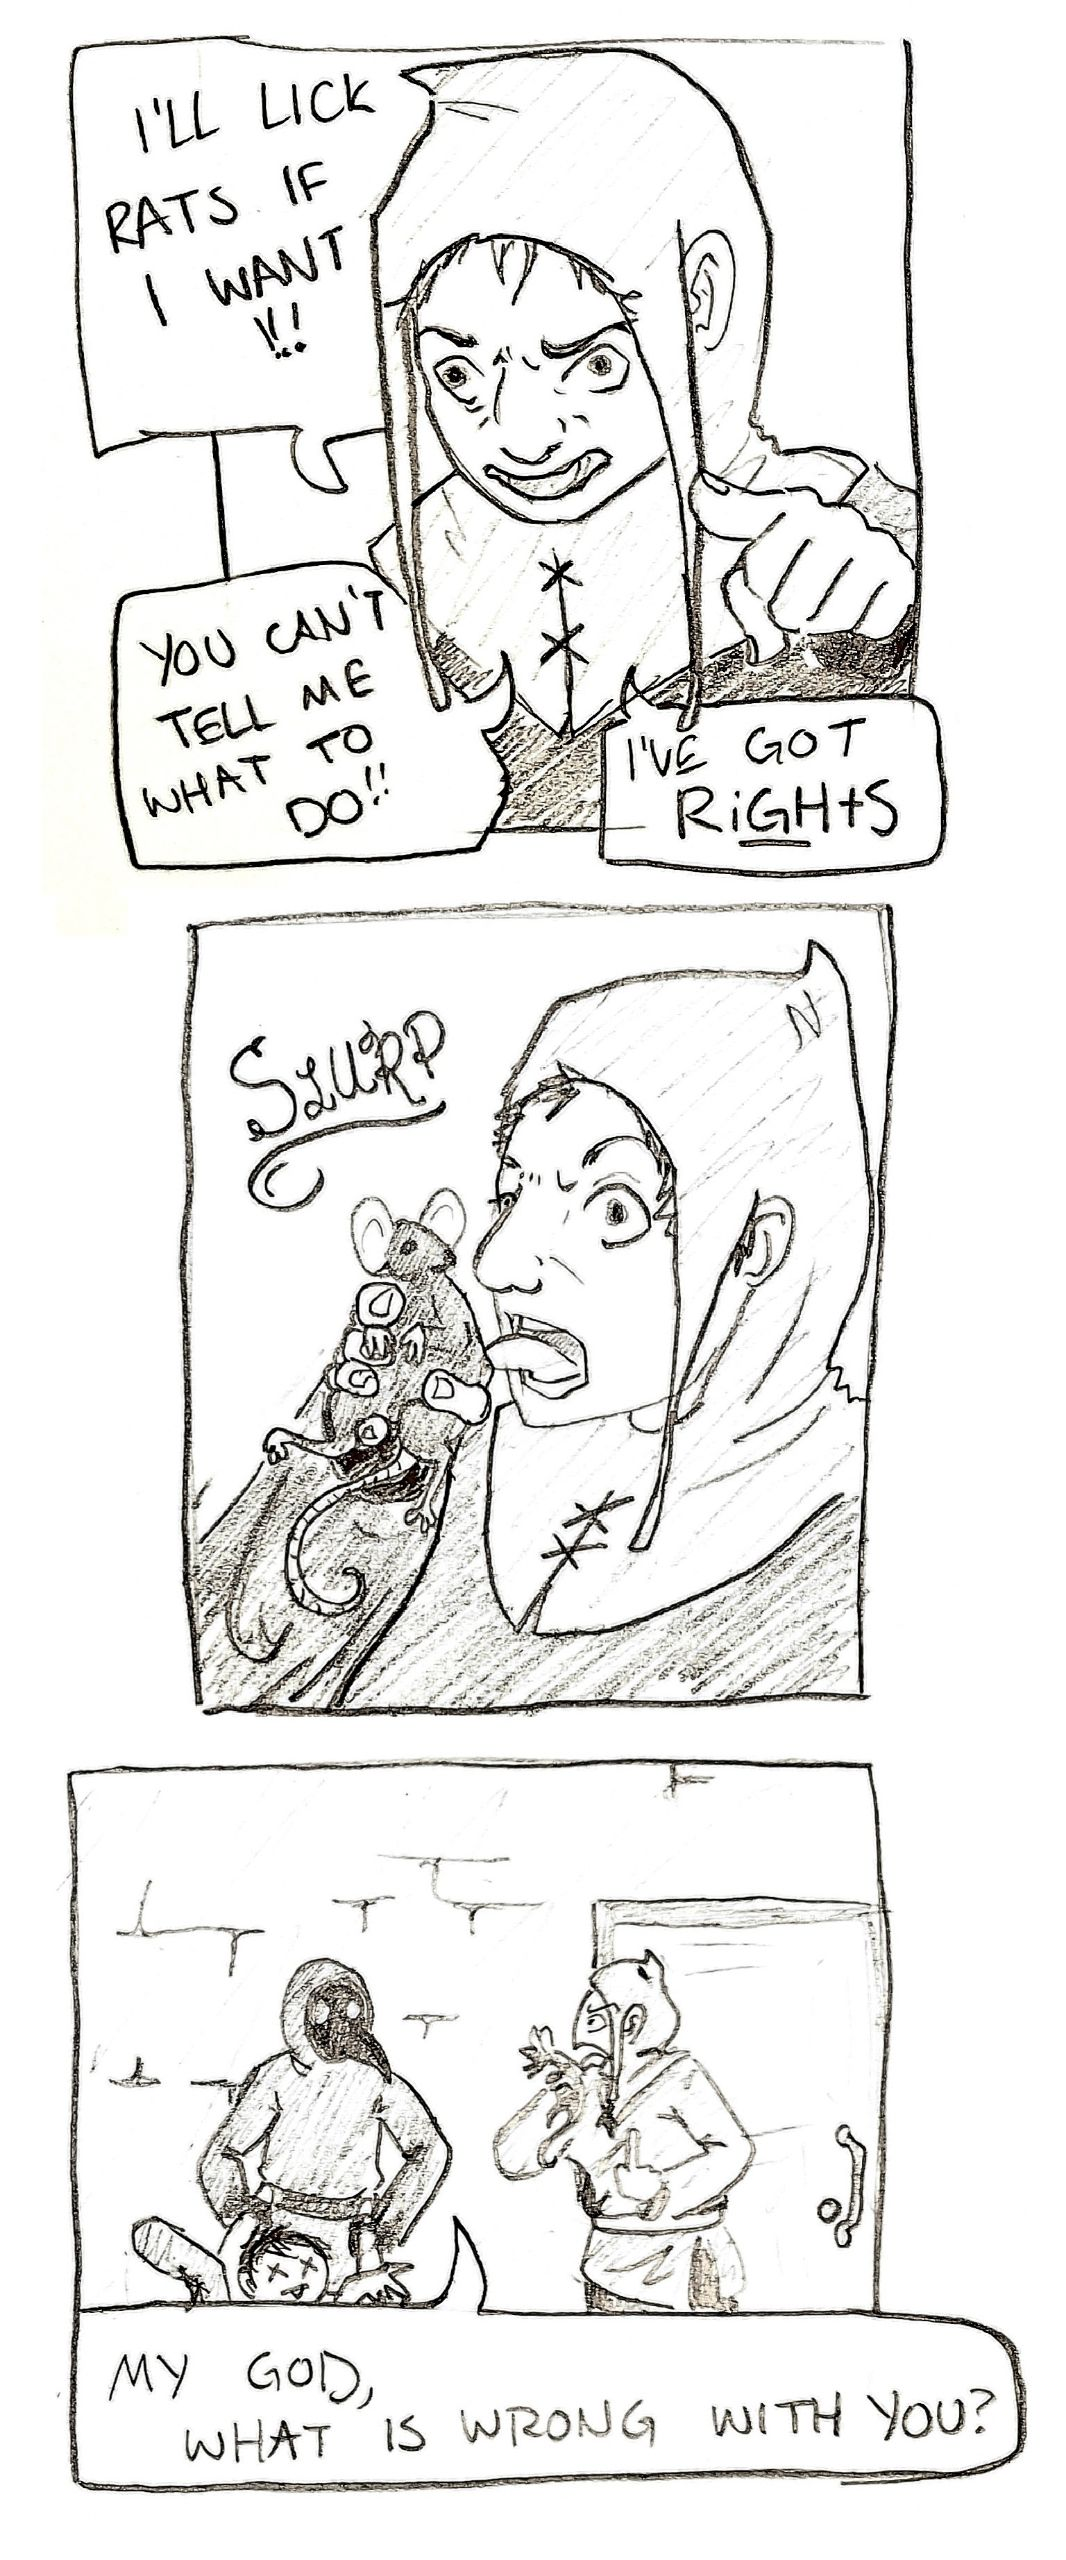 A friend told us that rat licker is slang for anti-masker in Ireland. My wife made this wonderful comic.